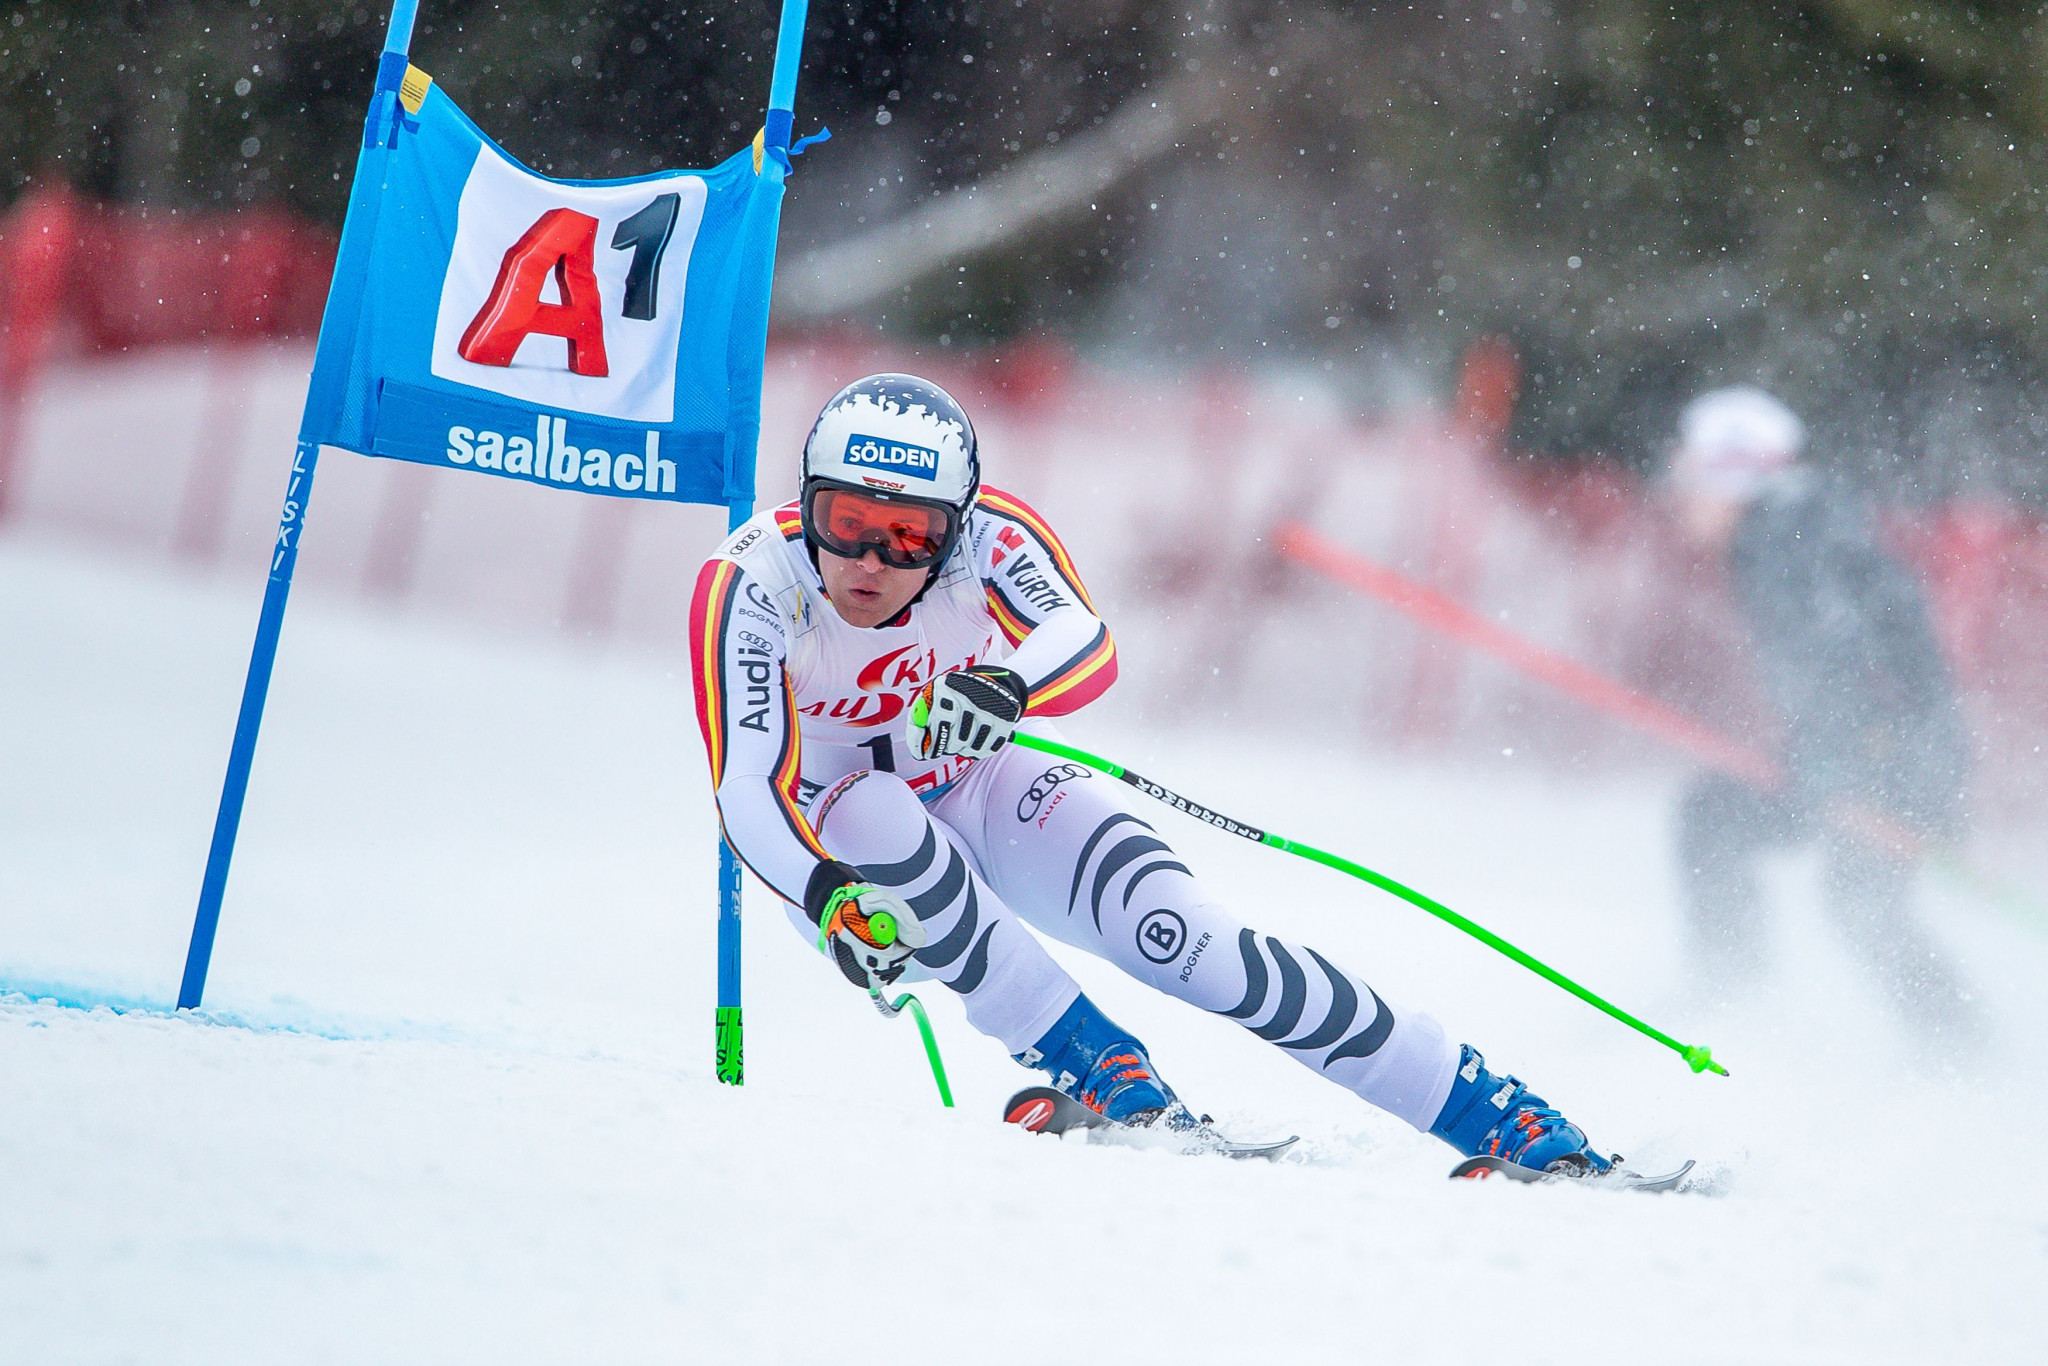 Saalbach is to stage races cancelled for coronavirus reasons for the second season in a row ©Getty Images